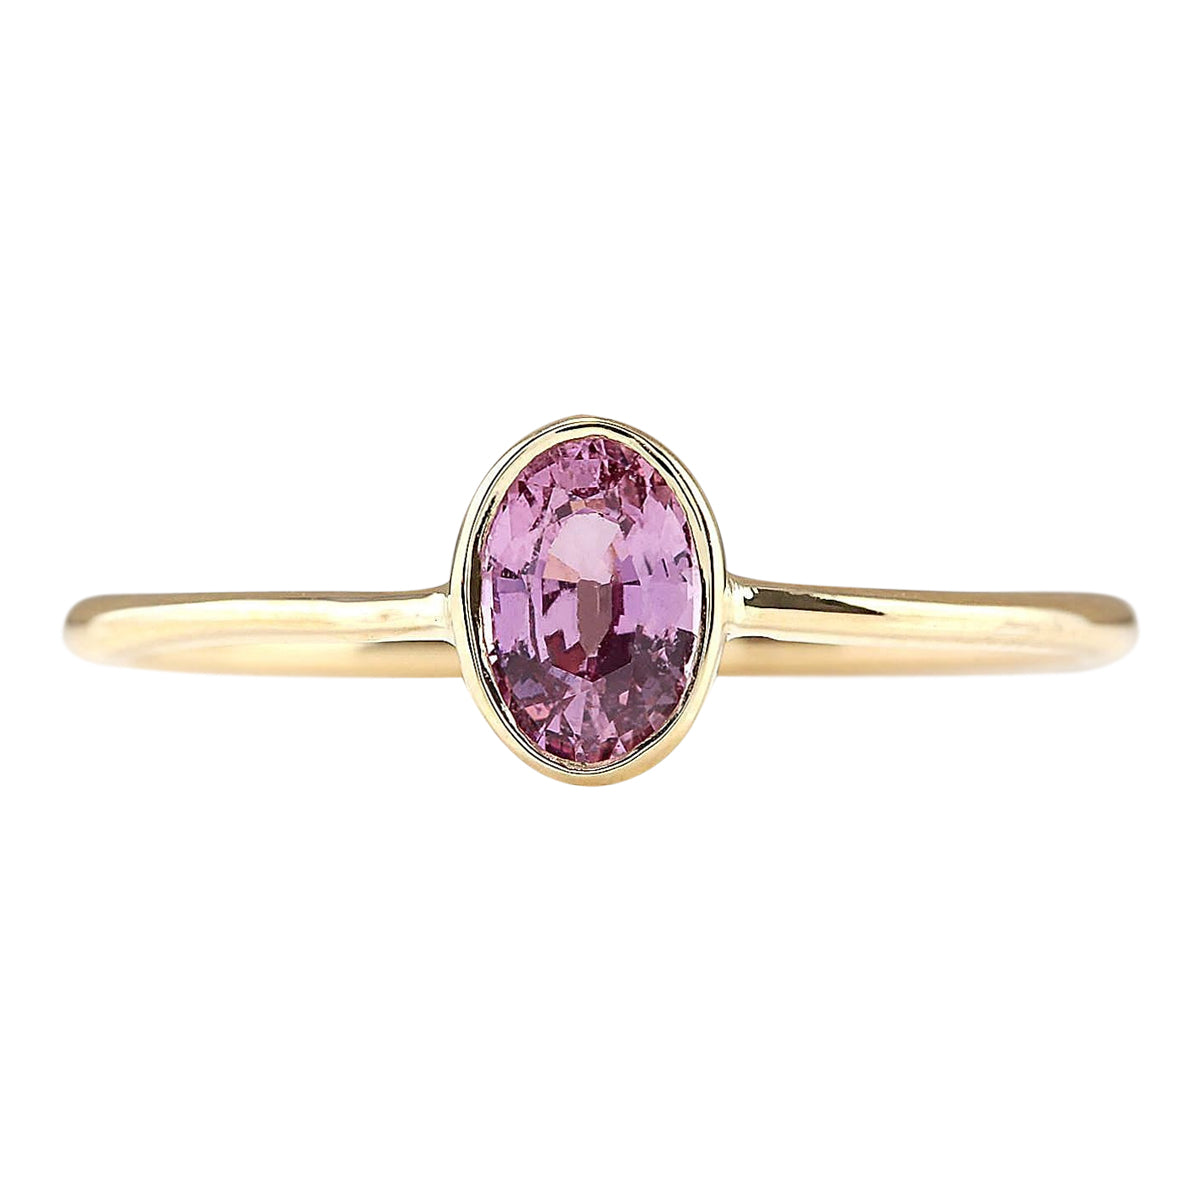 0.70 Carat Natural Ceylon Sapphire 14K Yellow Gold Ring